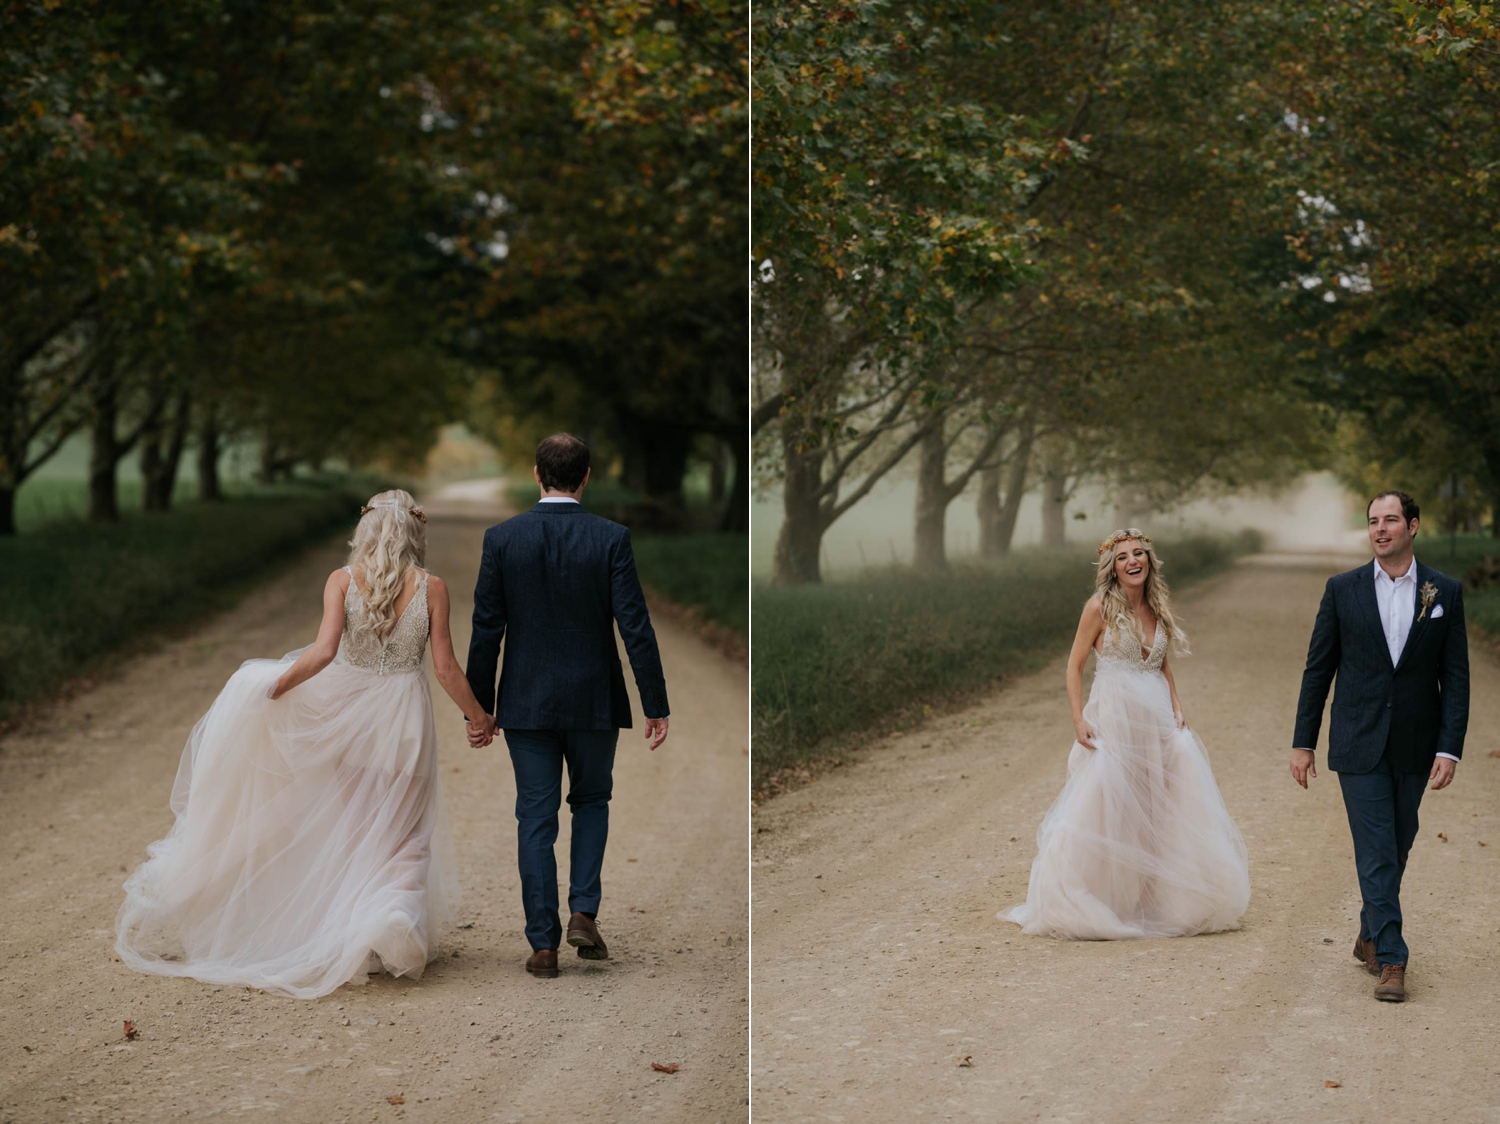 Bride and groom walking down farm road and laughing together under Autumn trees in the Natal Midlands.